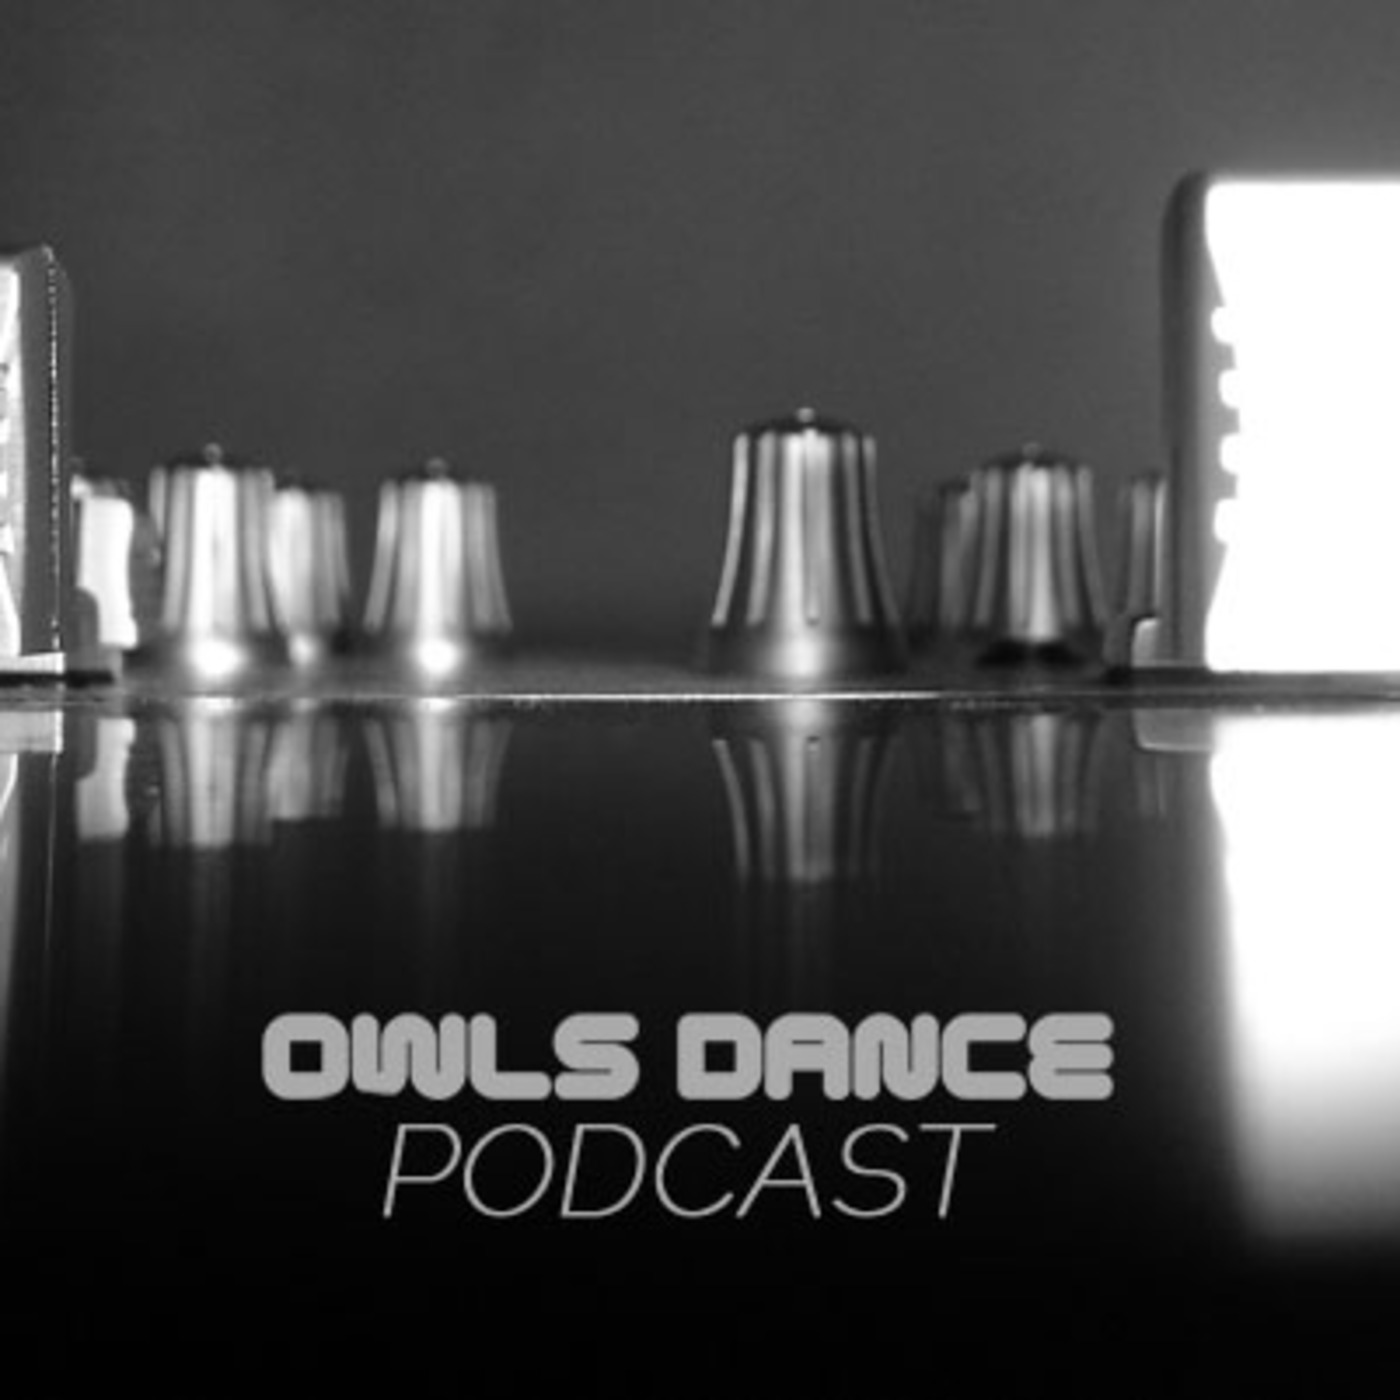 Owls Dance Podcast